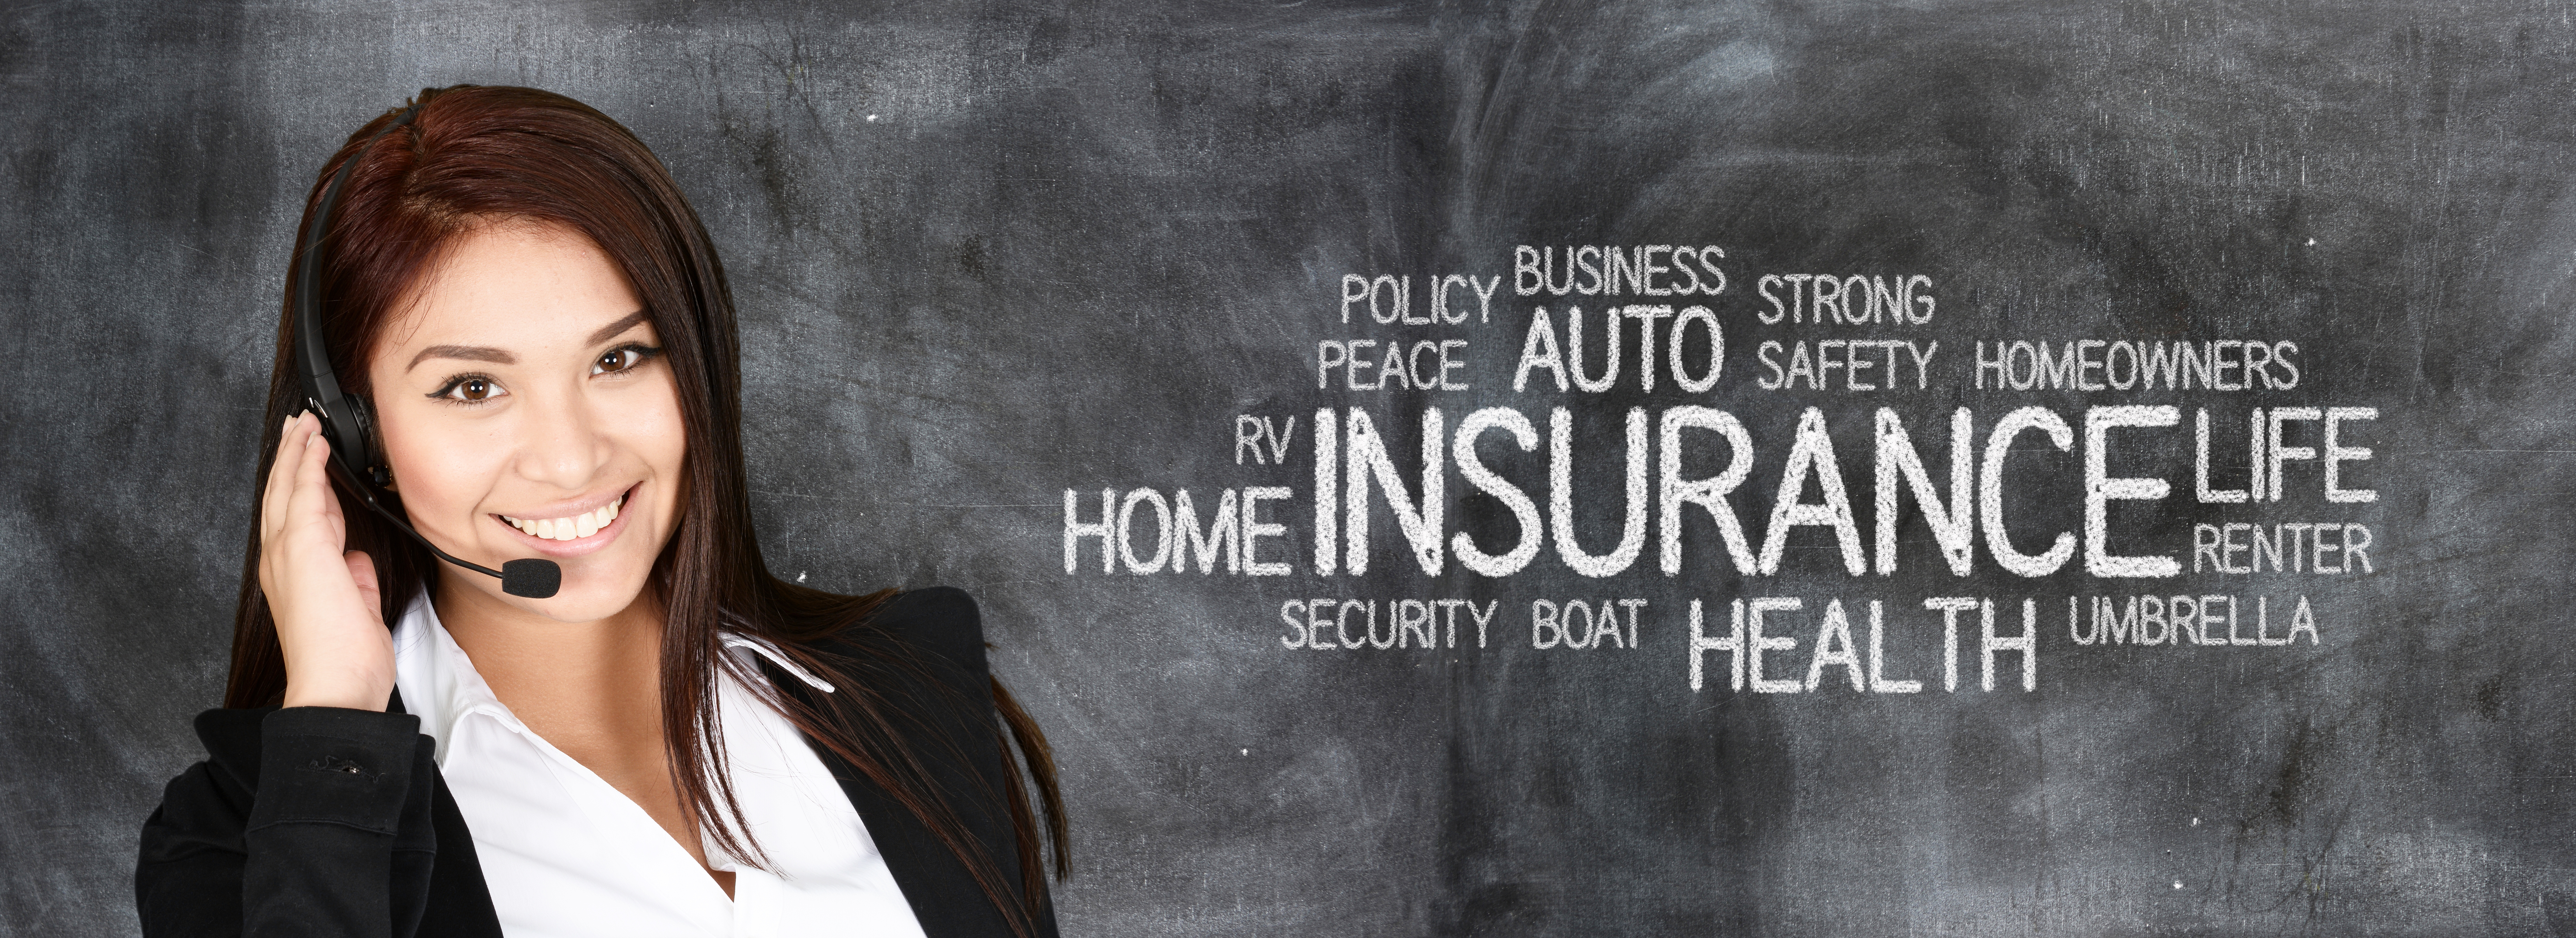 SUCCESSFUL - NATIONALLY BRANDED INSURANCE AGENCY